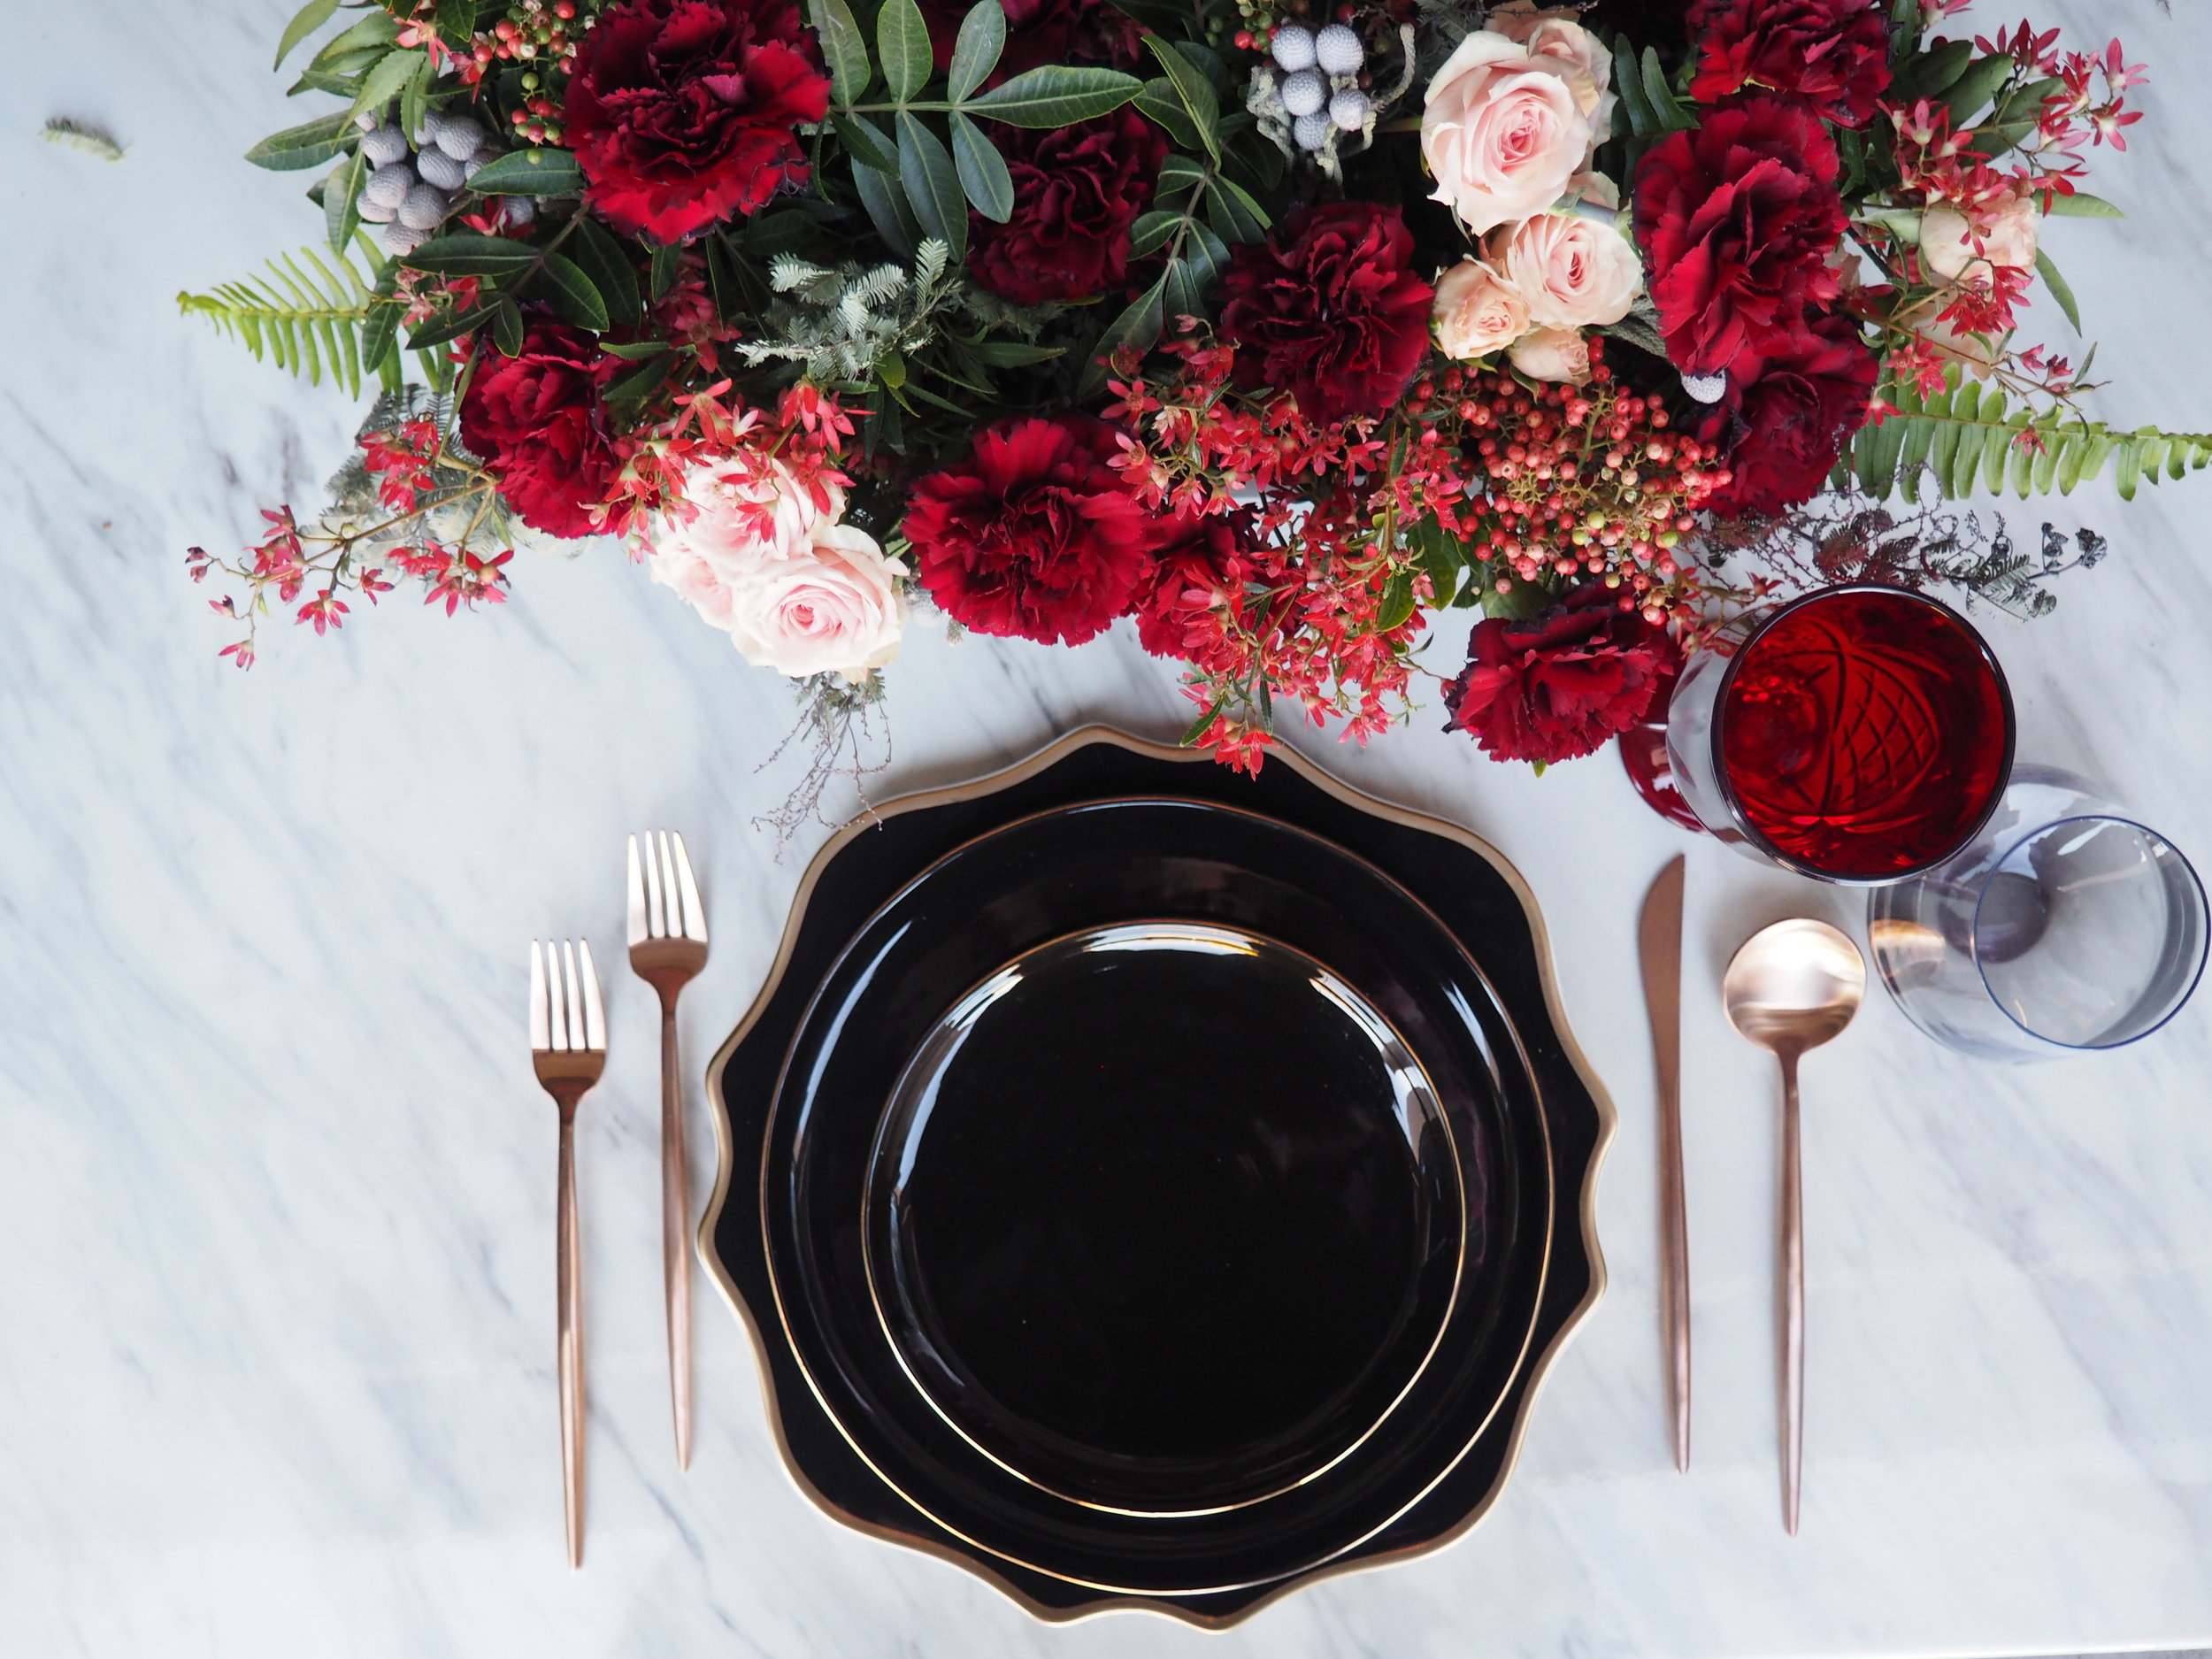 Featuring: Smoke Grey Stemless, Gold Flatware, Scalloped Black & Gold Charger, Aura Black & Gold Dinner Plate & Aura Black & Gold Salad Plate.